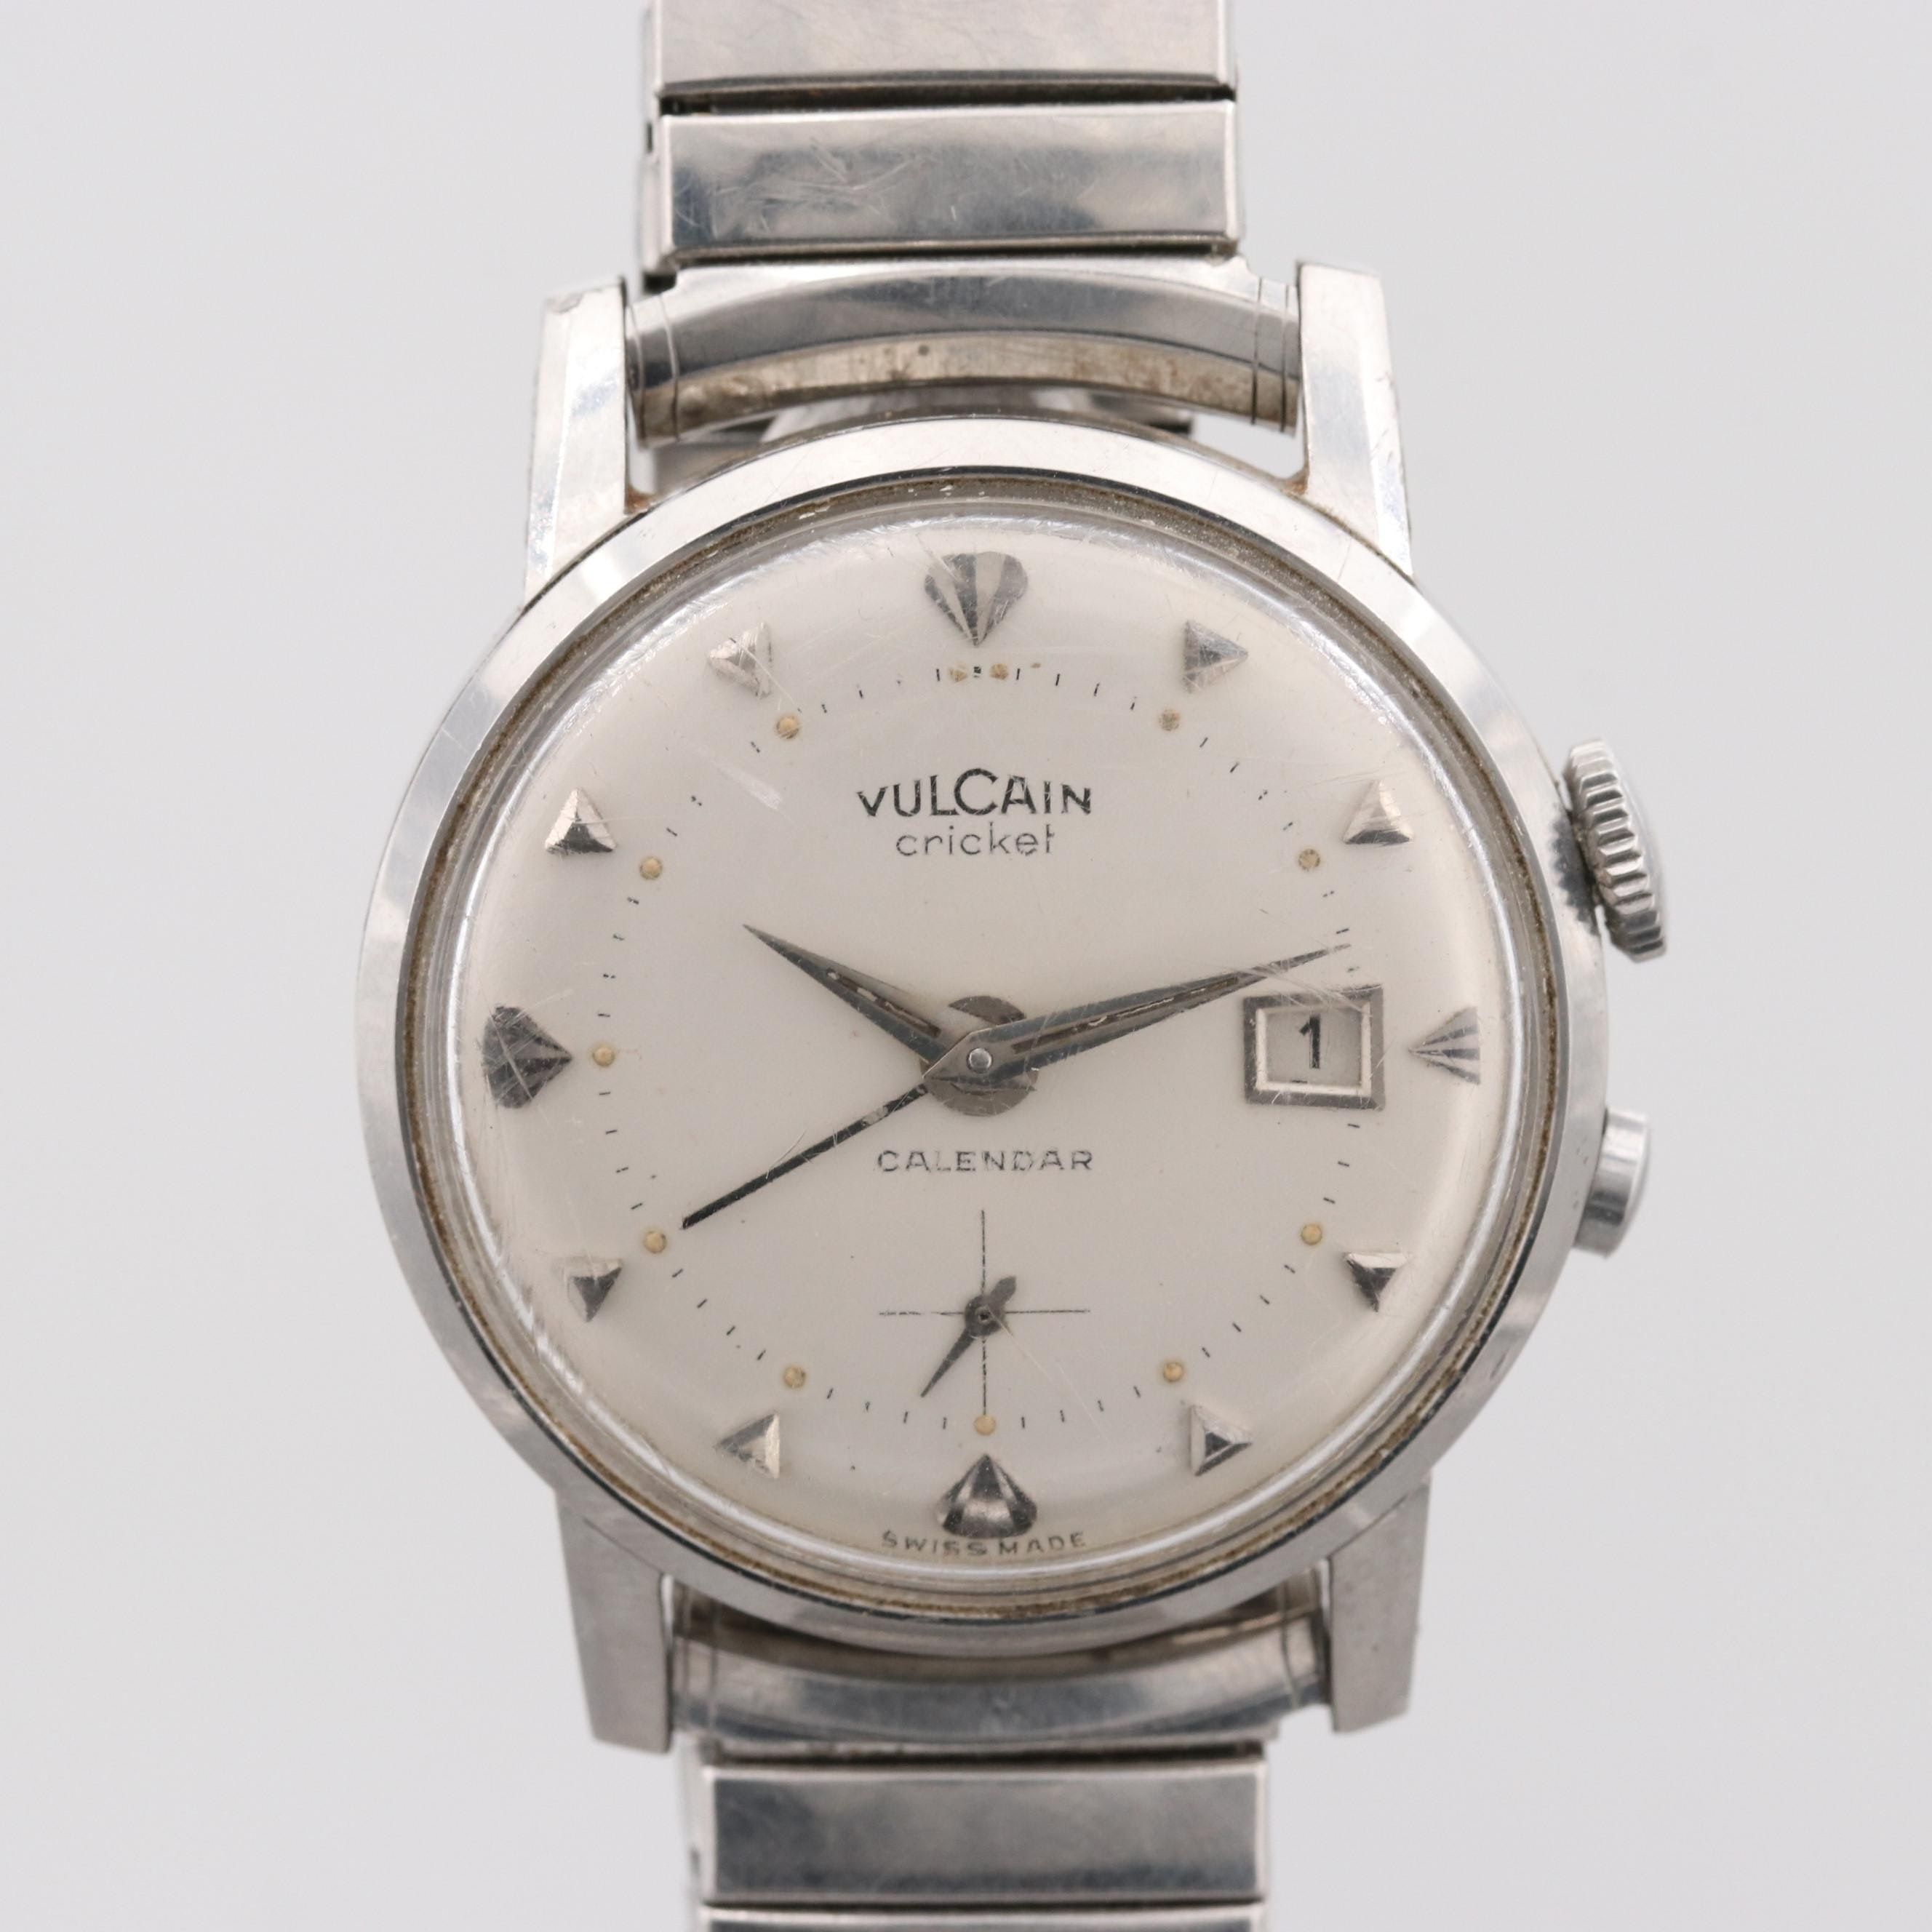 Vintage Vulcain Cricket Stainless Steel Stem Wind Wristwatch With Date